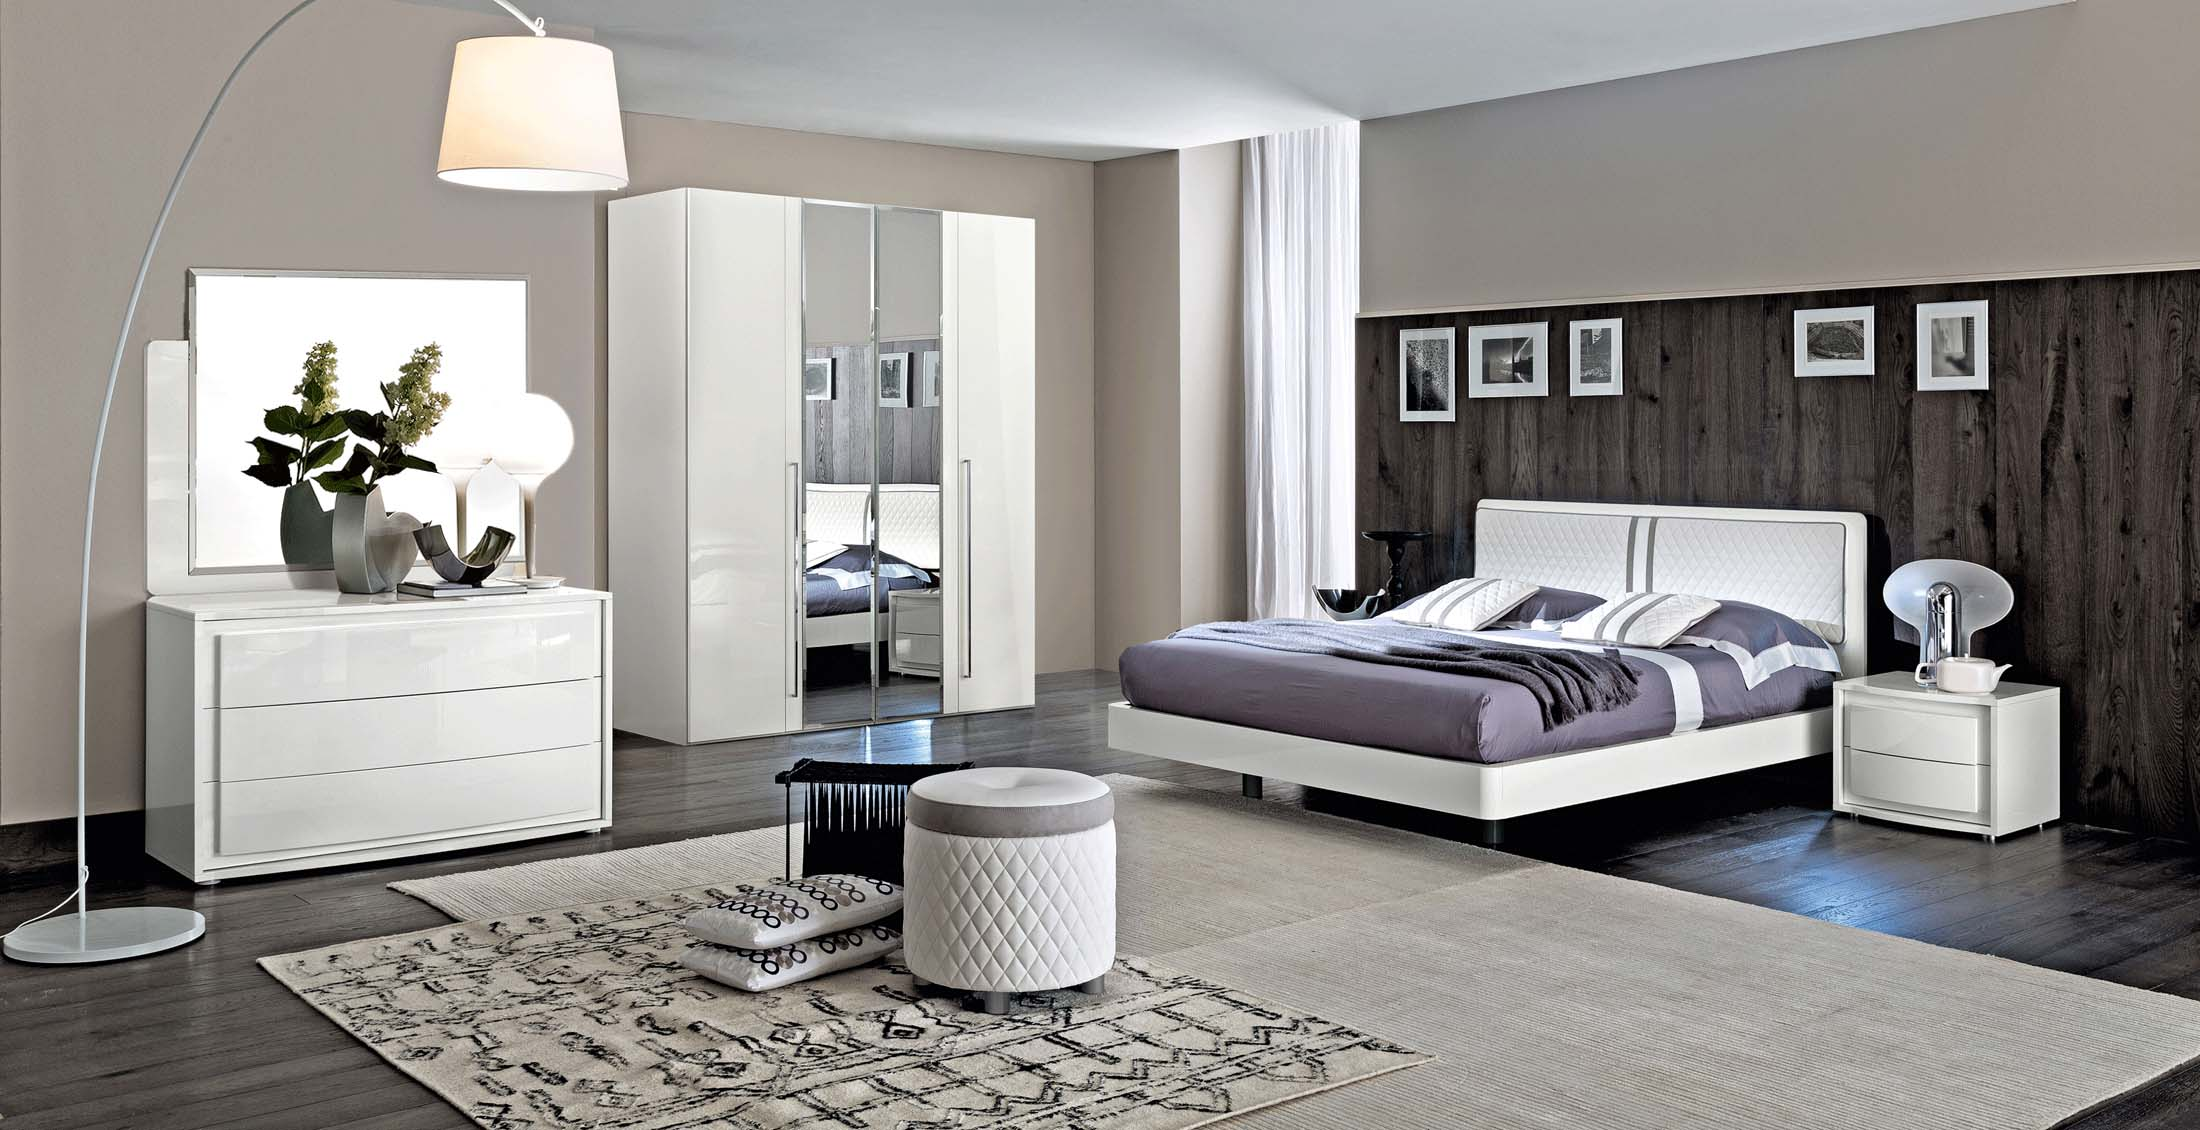 Bedroom Furniture Modern Bedrooms QS and KS Dama Bianca Bedroom by CamelGroup Italy